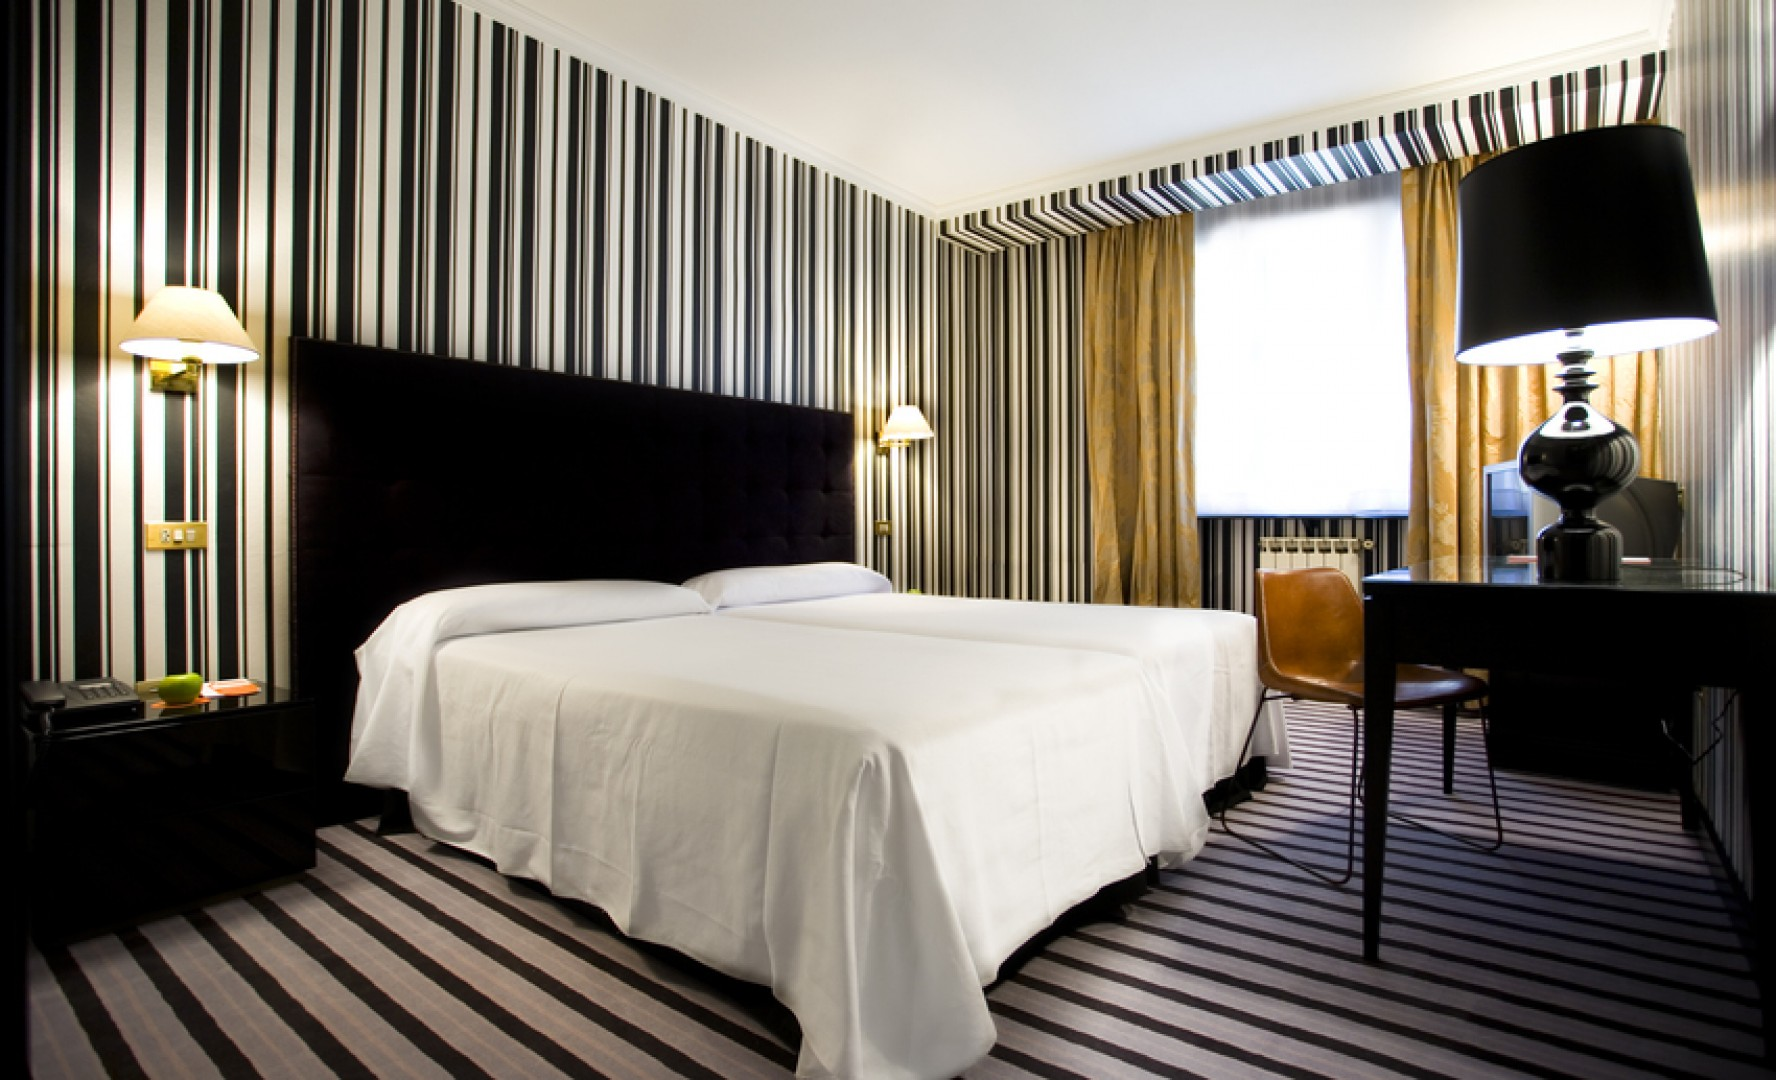 Oviedo to santiago de compostela charming hotels for Charming hotel